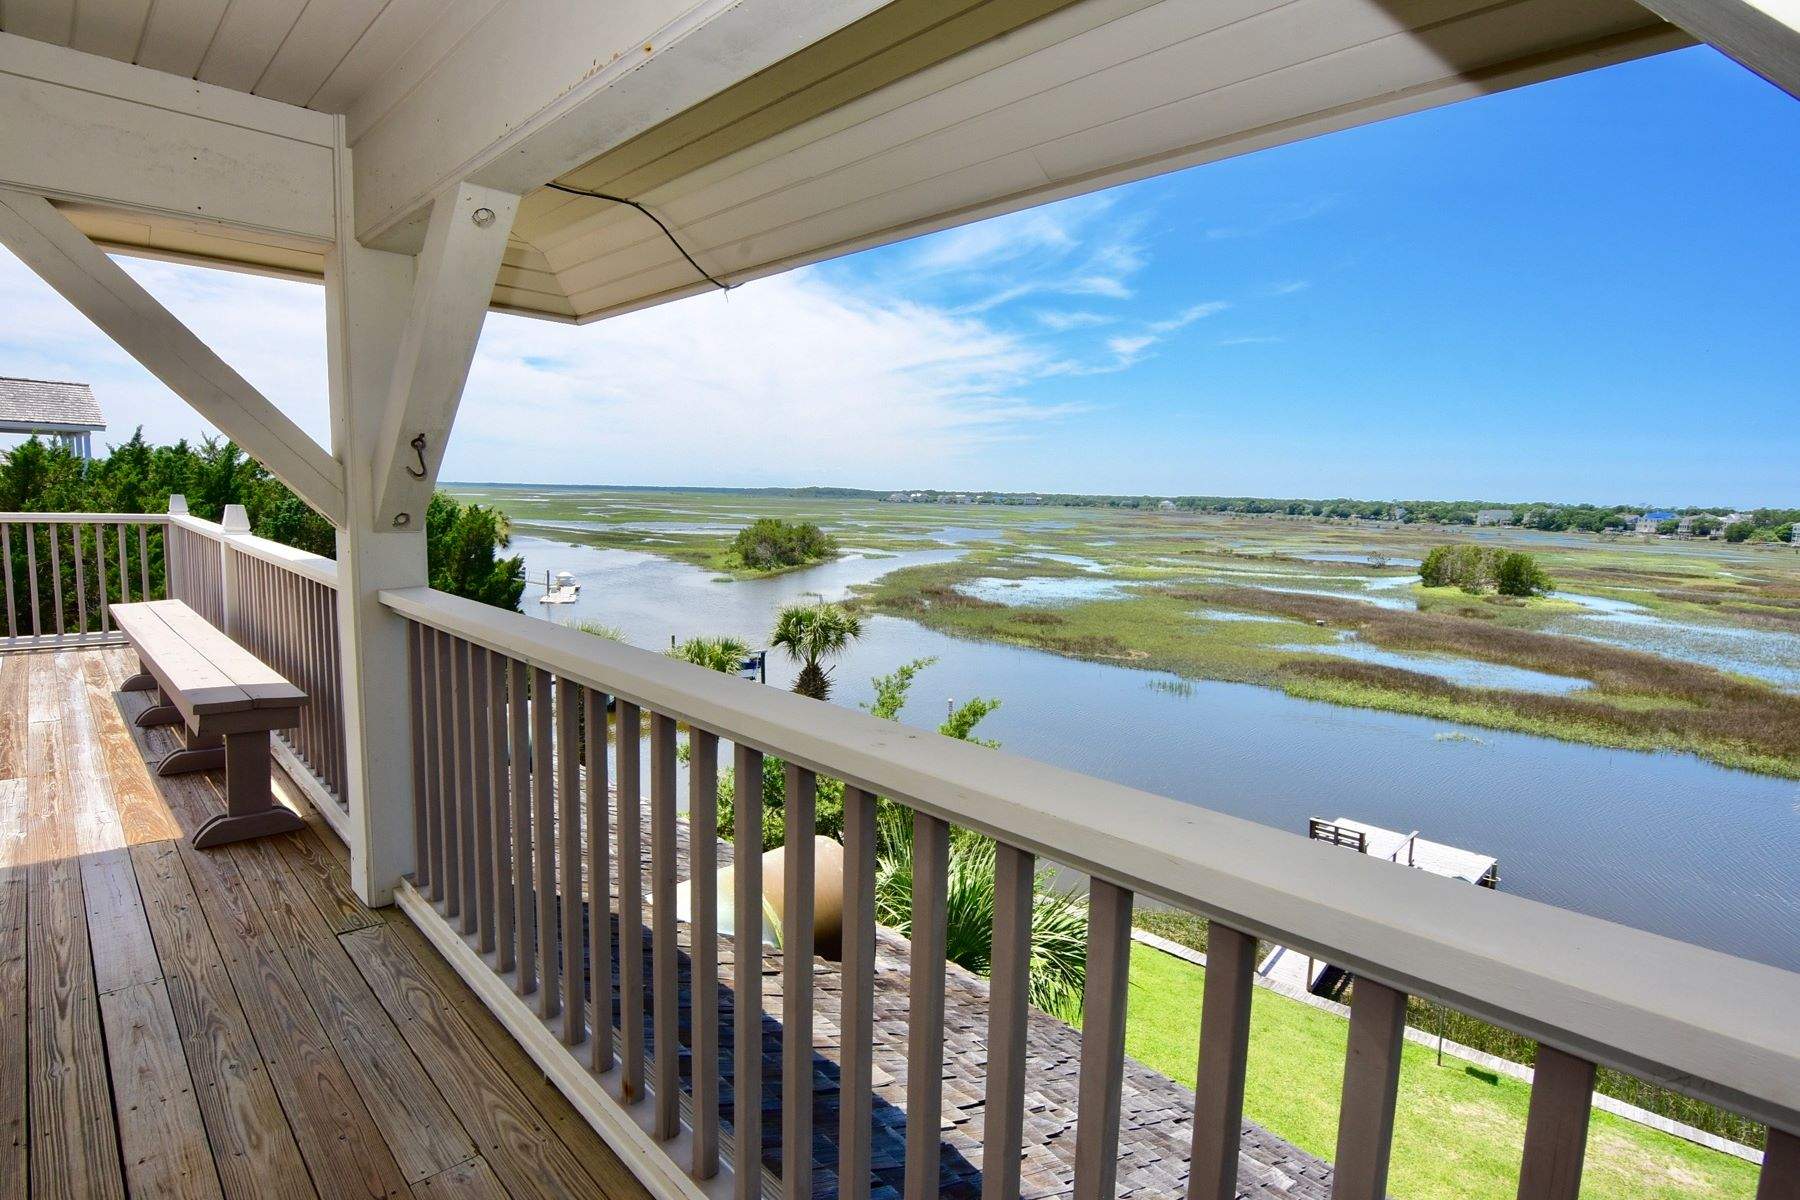 Additional photo for property listing at 650 Debordieu Blvd., Georgetown, SC 29440 650  Debordieu Blvd. Georgetown, South Carolina 29440 United States